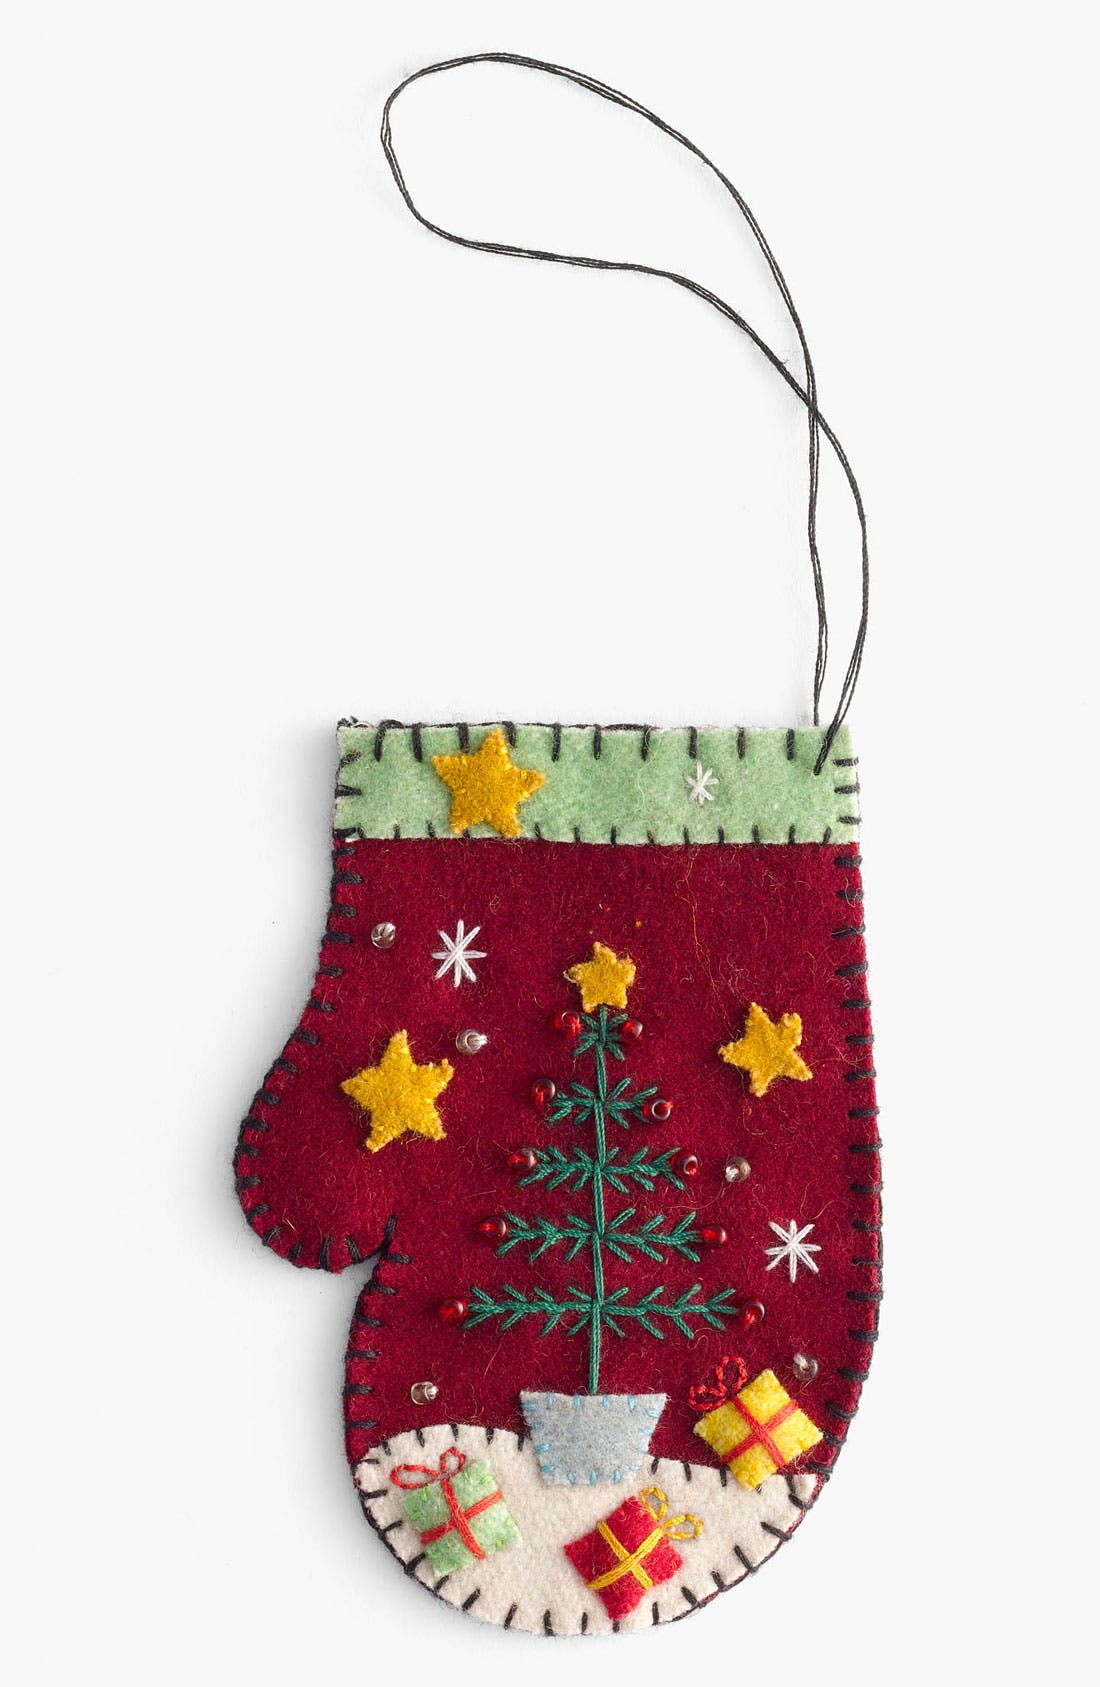 Alternate Image 1 Selected - New World Arts 'Tree with Presents' Mitten Ornament